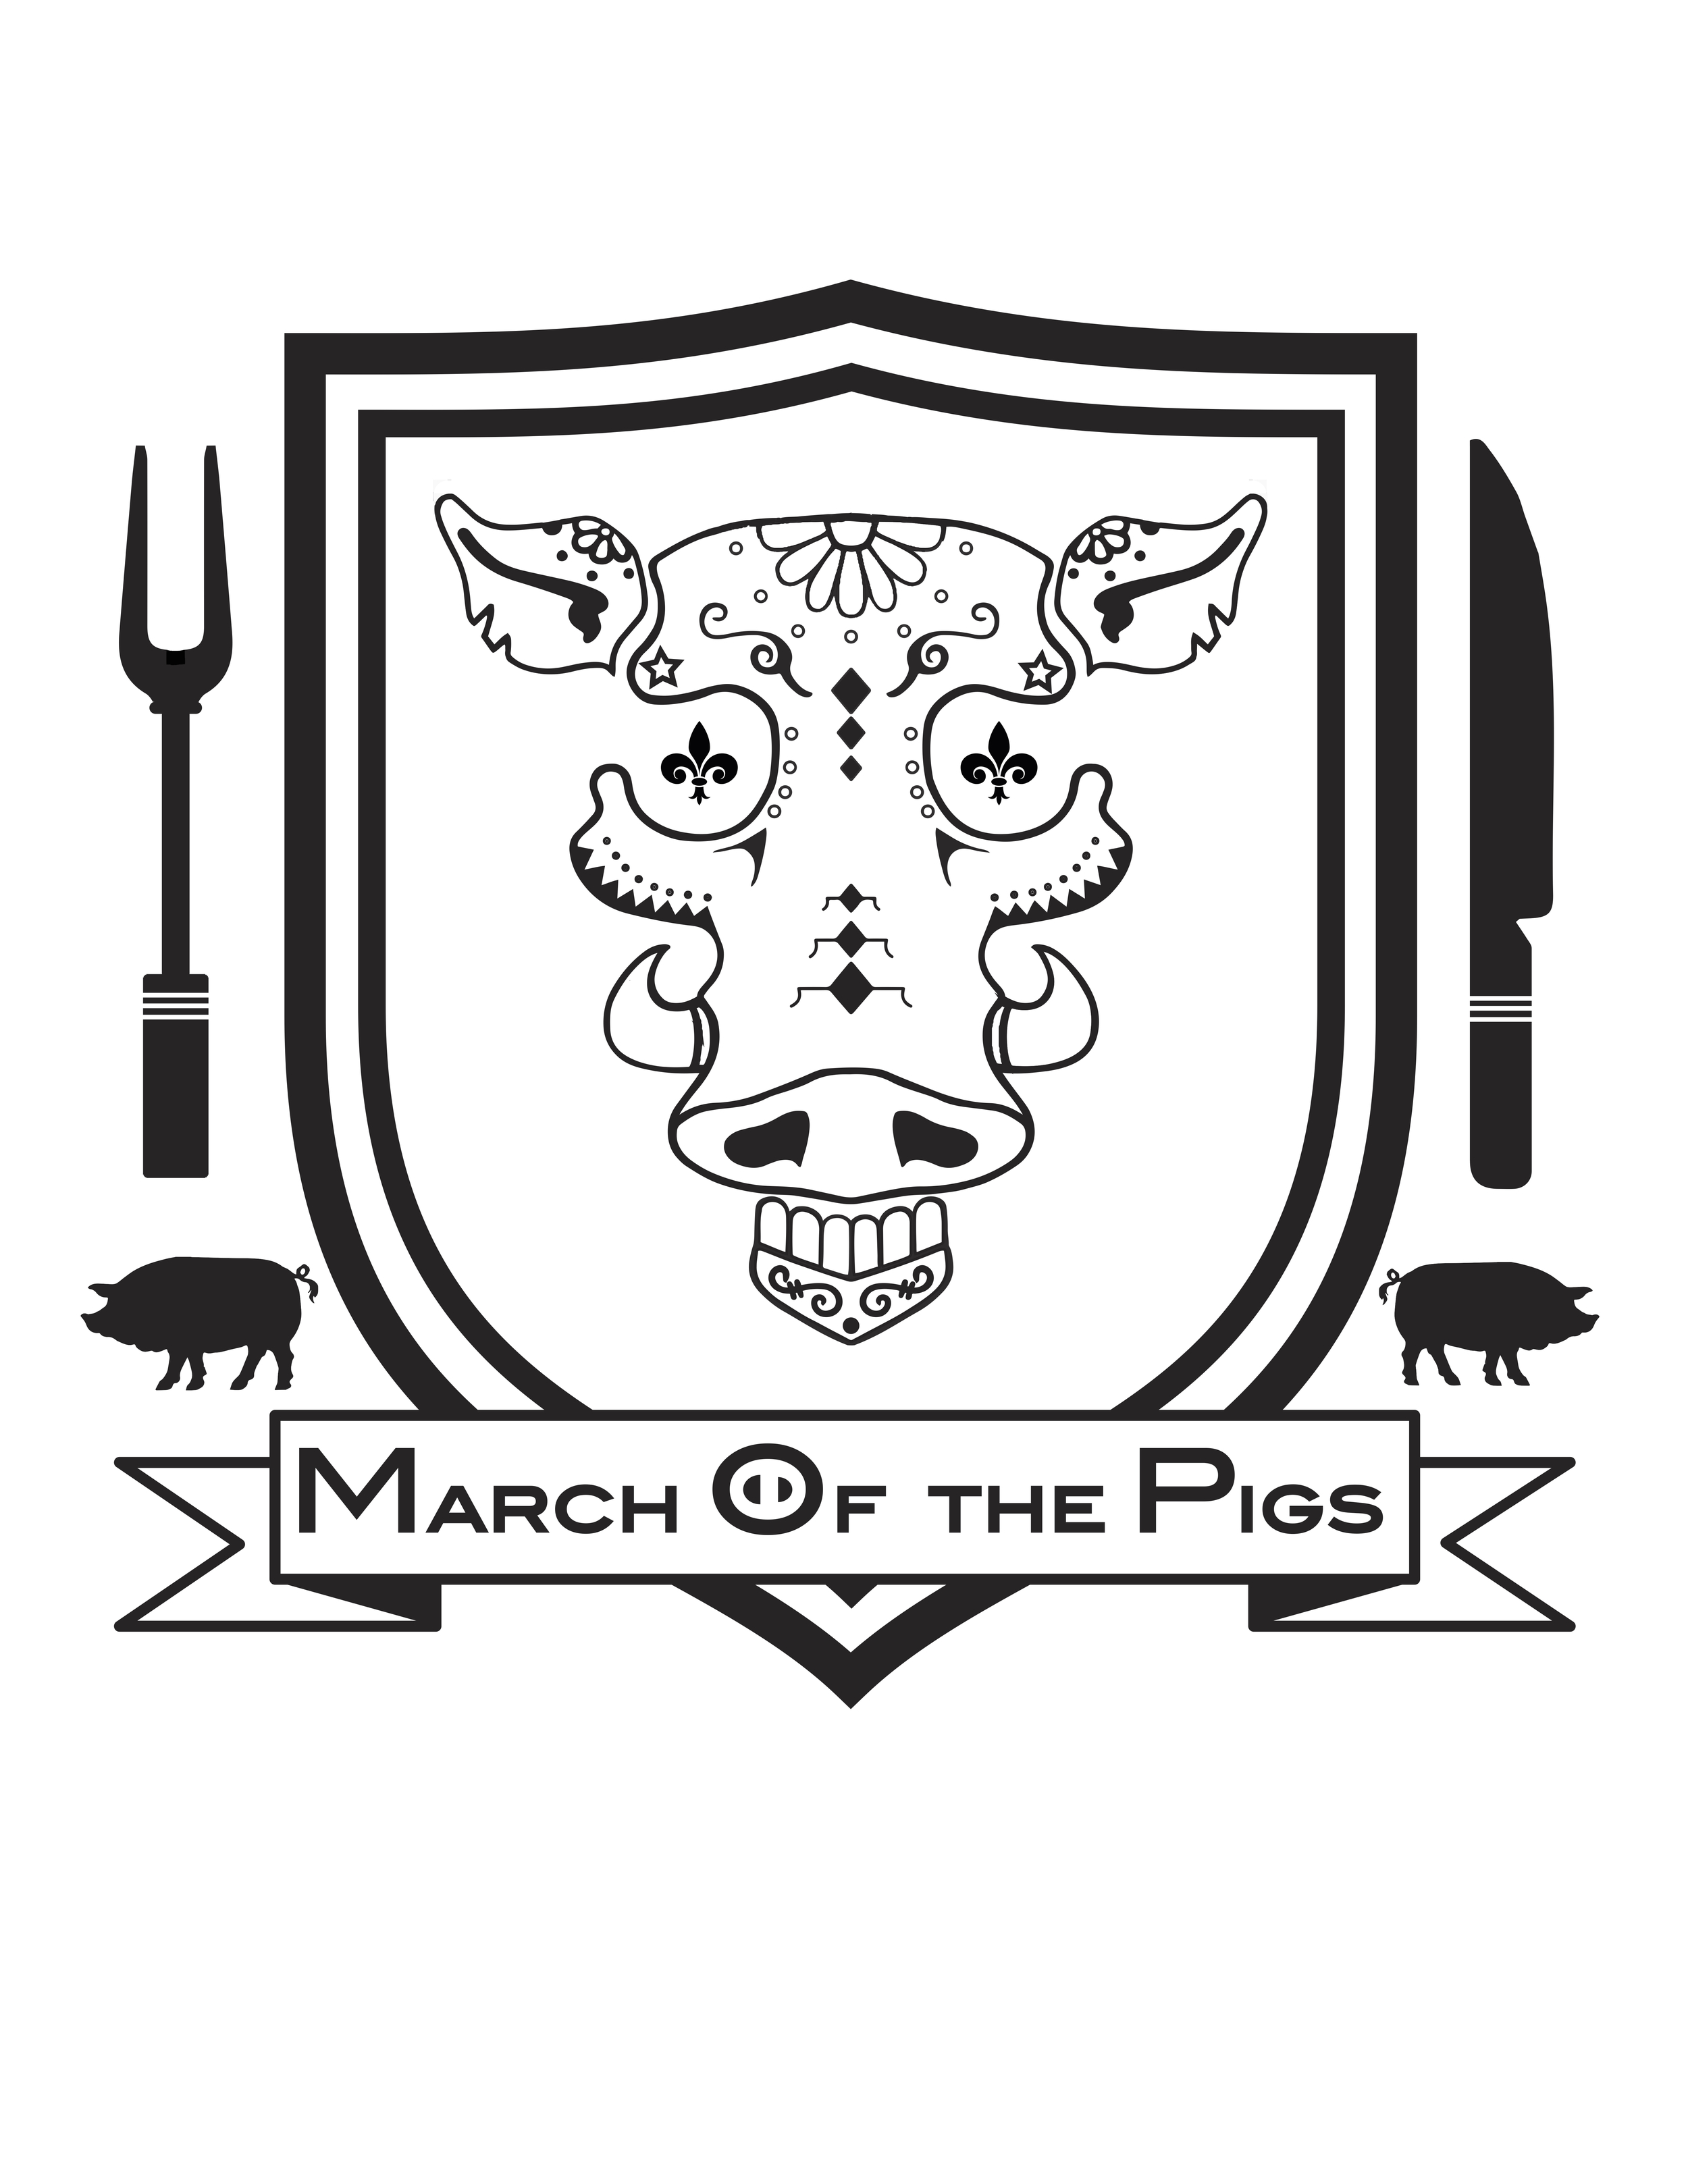 Team March of the Pigs BBQ New Orleans